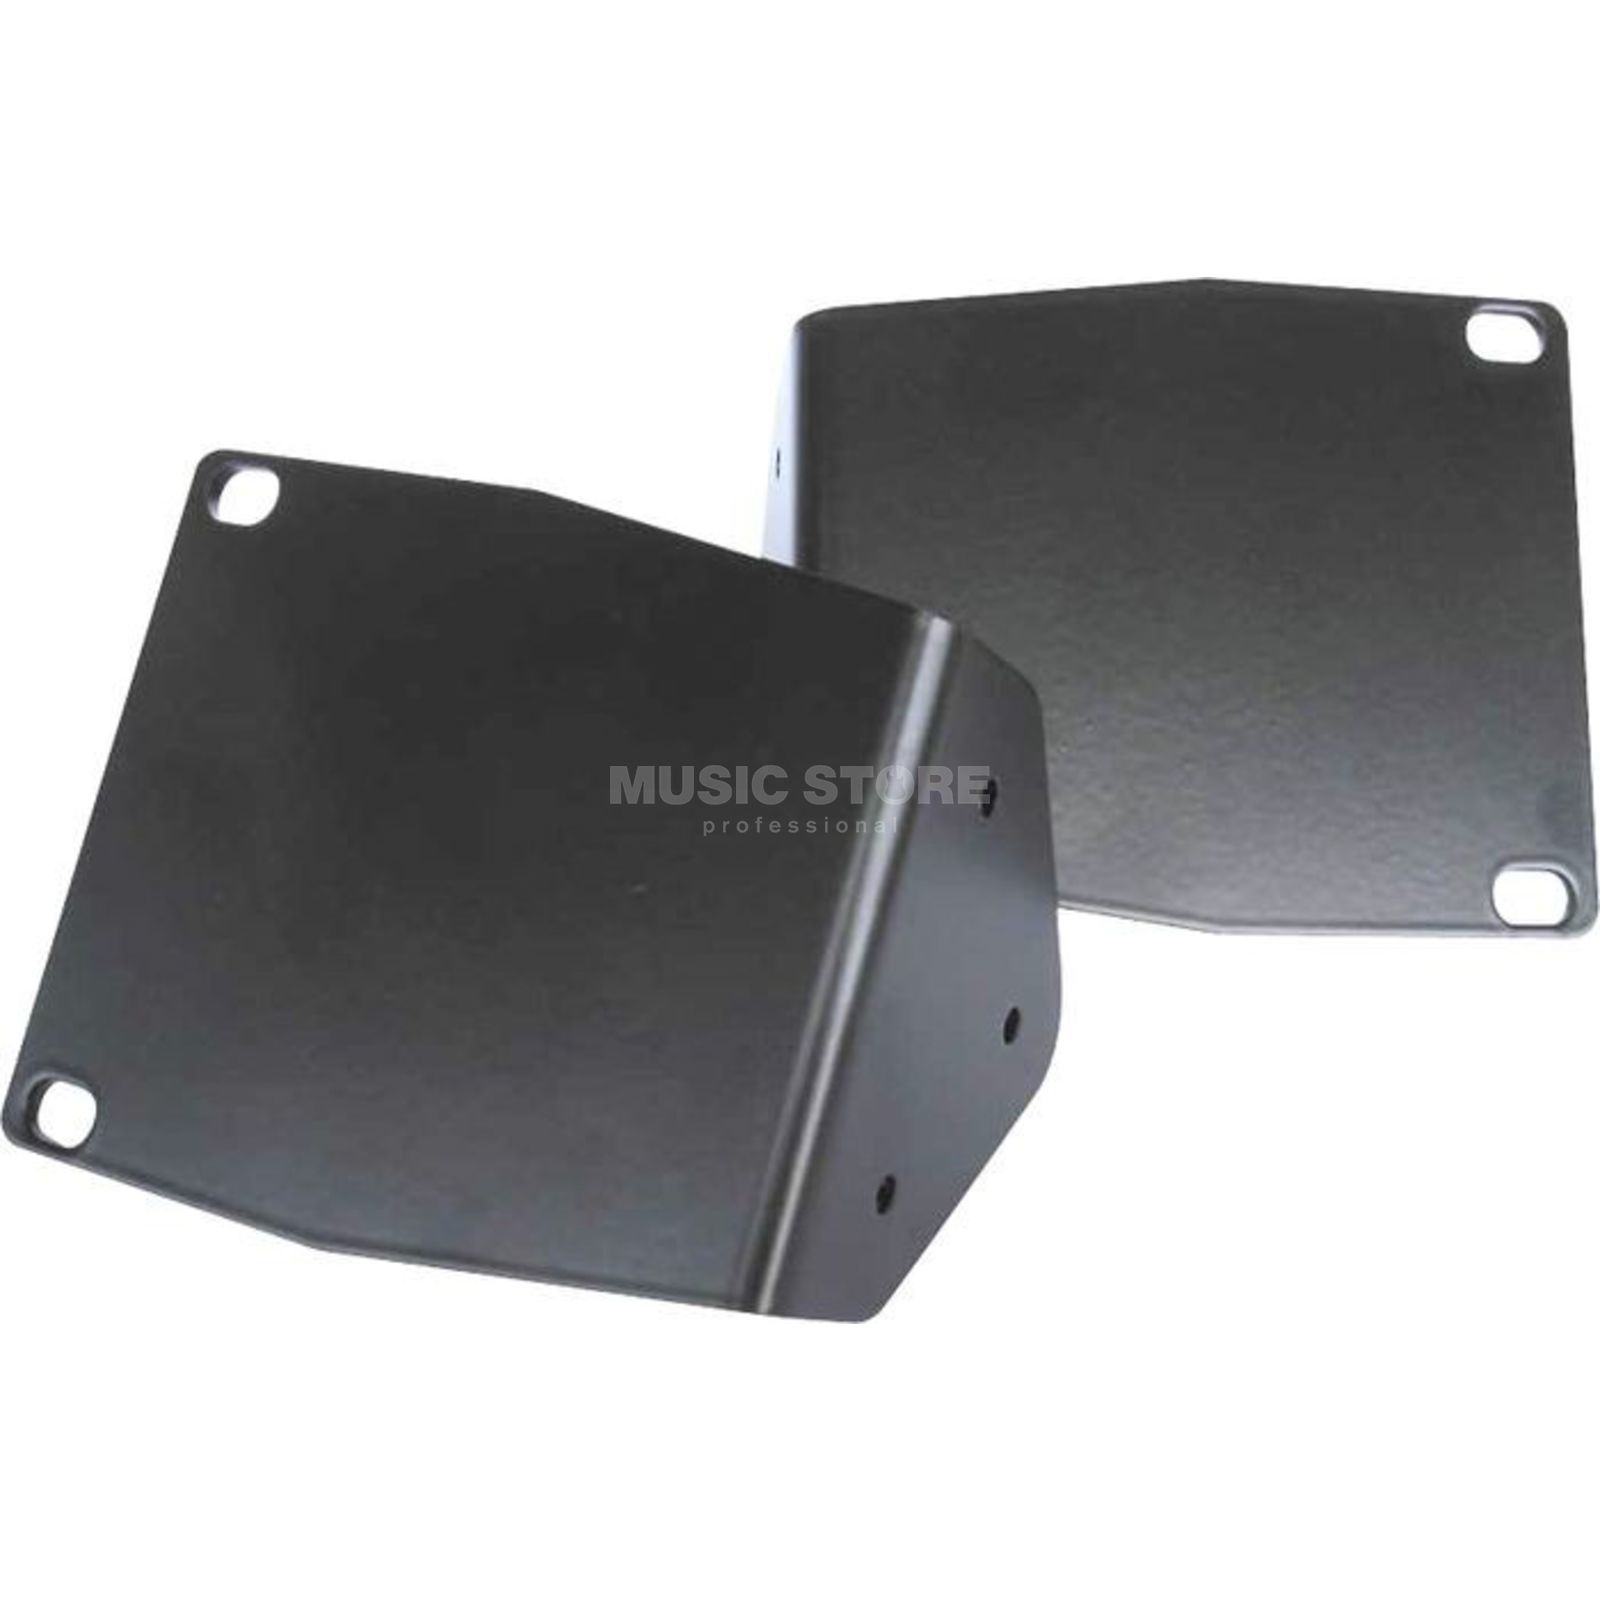 Markbass Rack Mount Little Mark III+LMK  Product Image